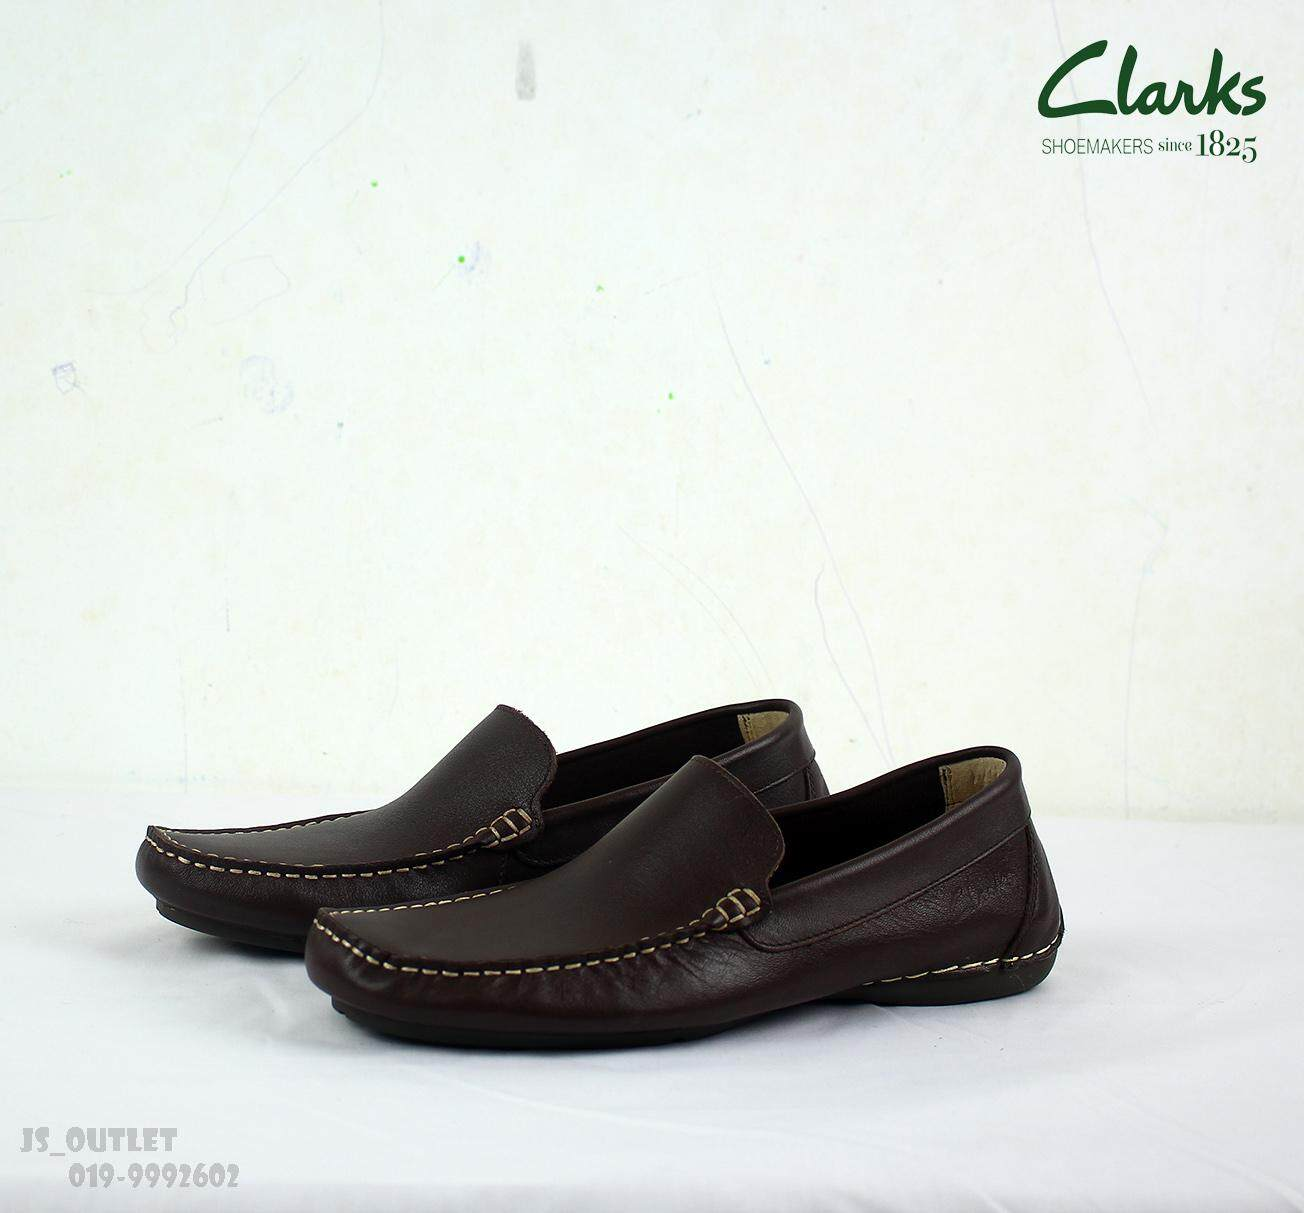 594f776a86cce8 Clarks - Buy Clarks at Best Price in Malaysia